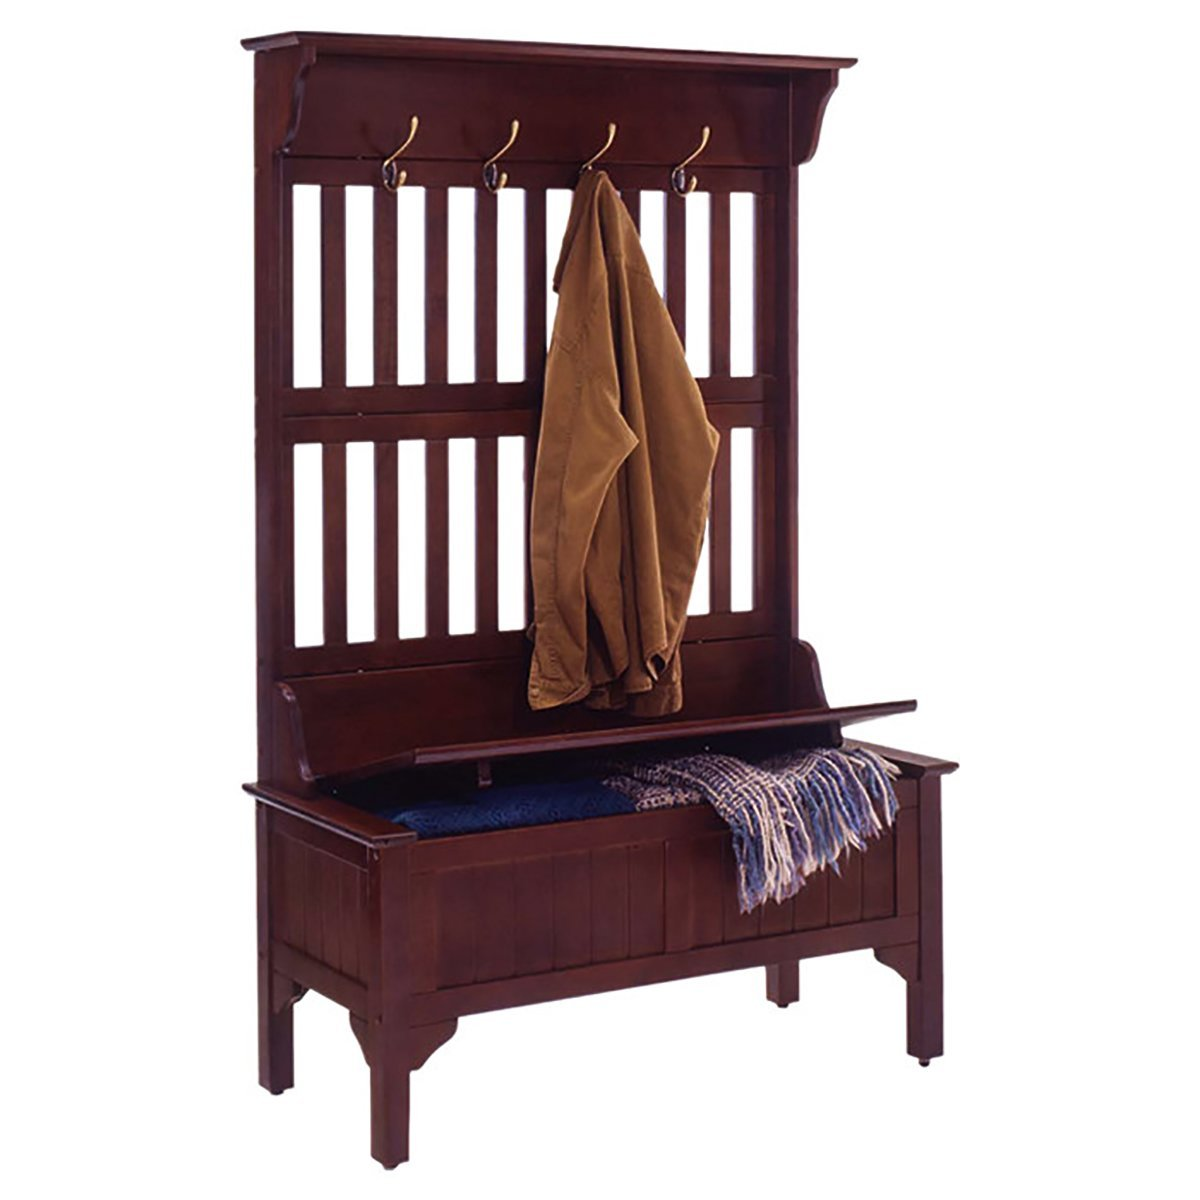 Cottage Style Hall Tree Storage Bench With Heavy Duty Brass Coat Hooks And Lacquer Finish plus FREE GIFT (Cherry)